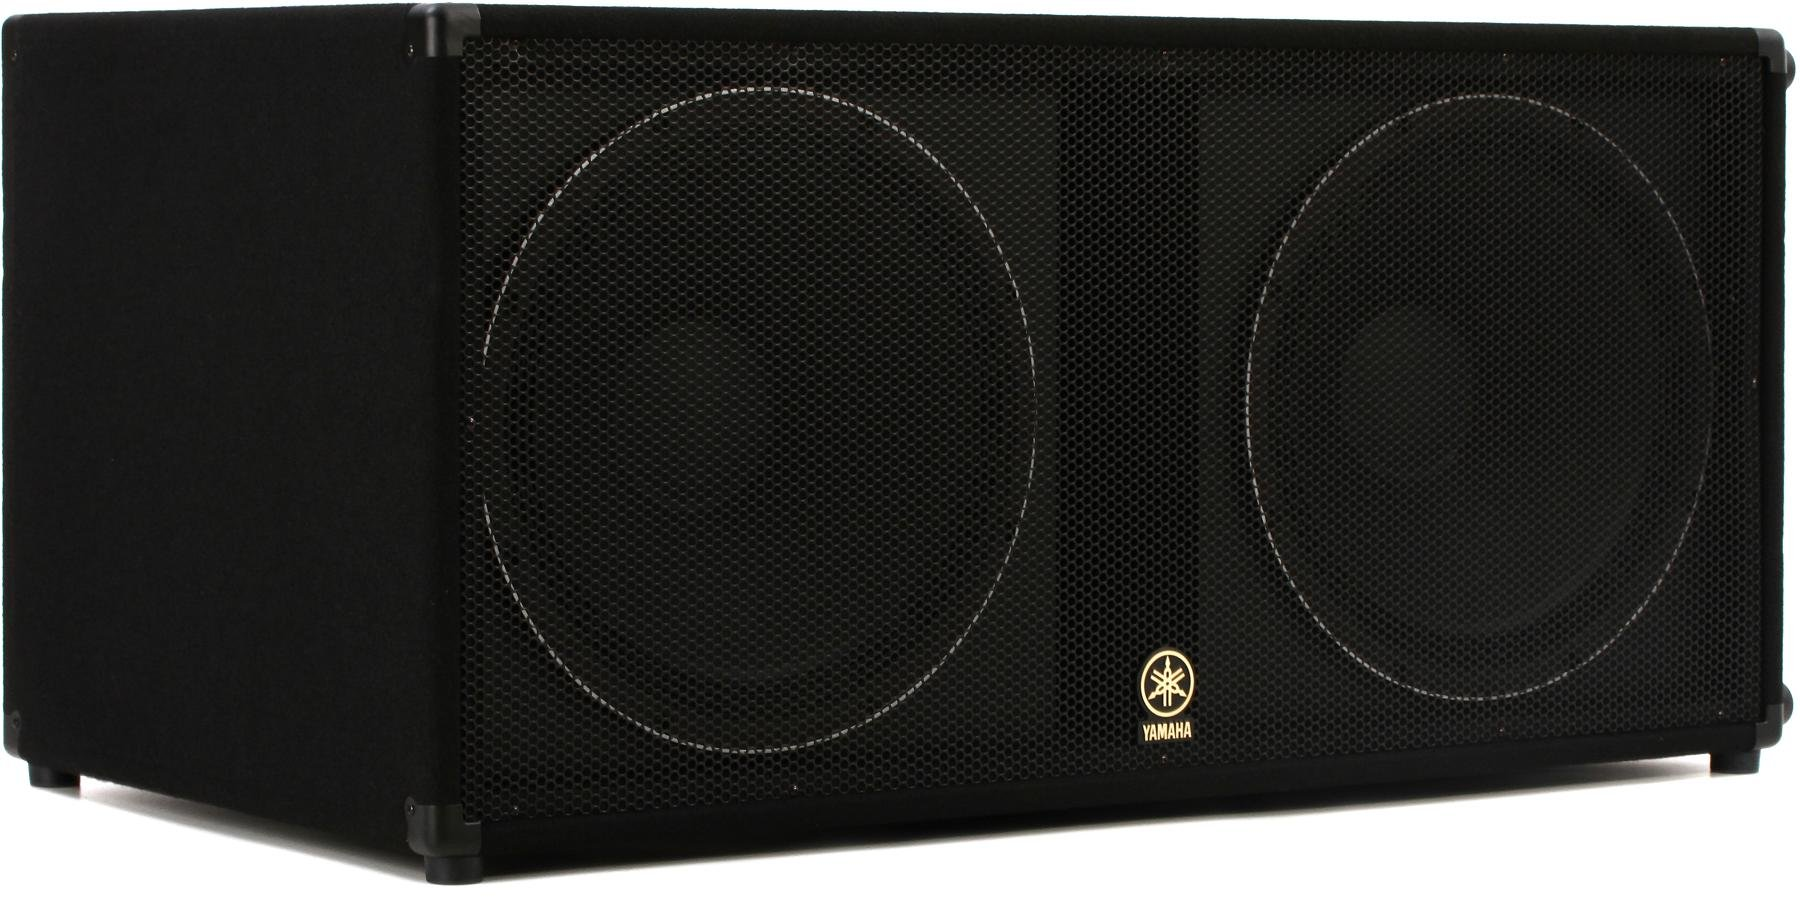 Yamaha SW21V 21W Dual 21 inch Passive Subwoofer   Sweetwater